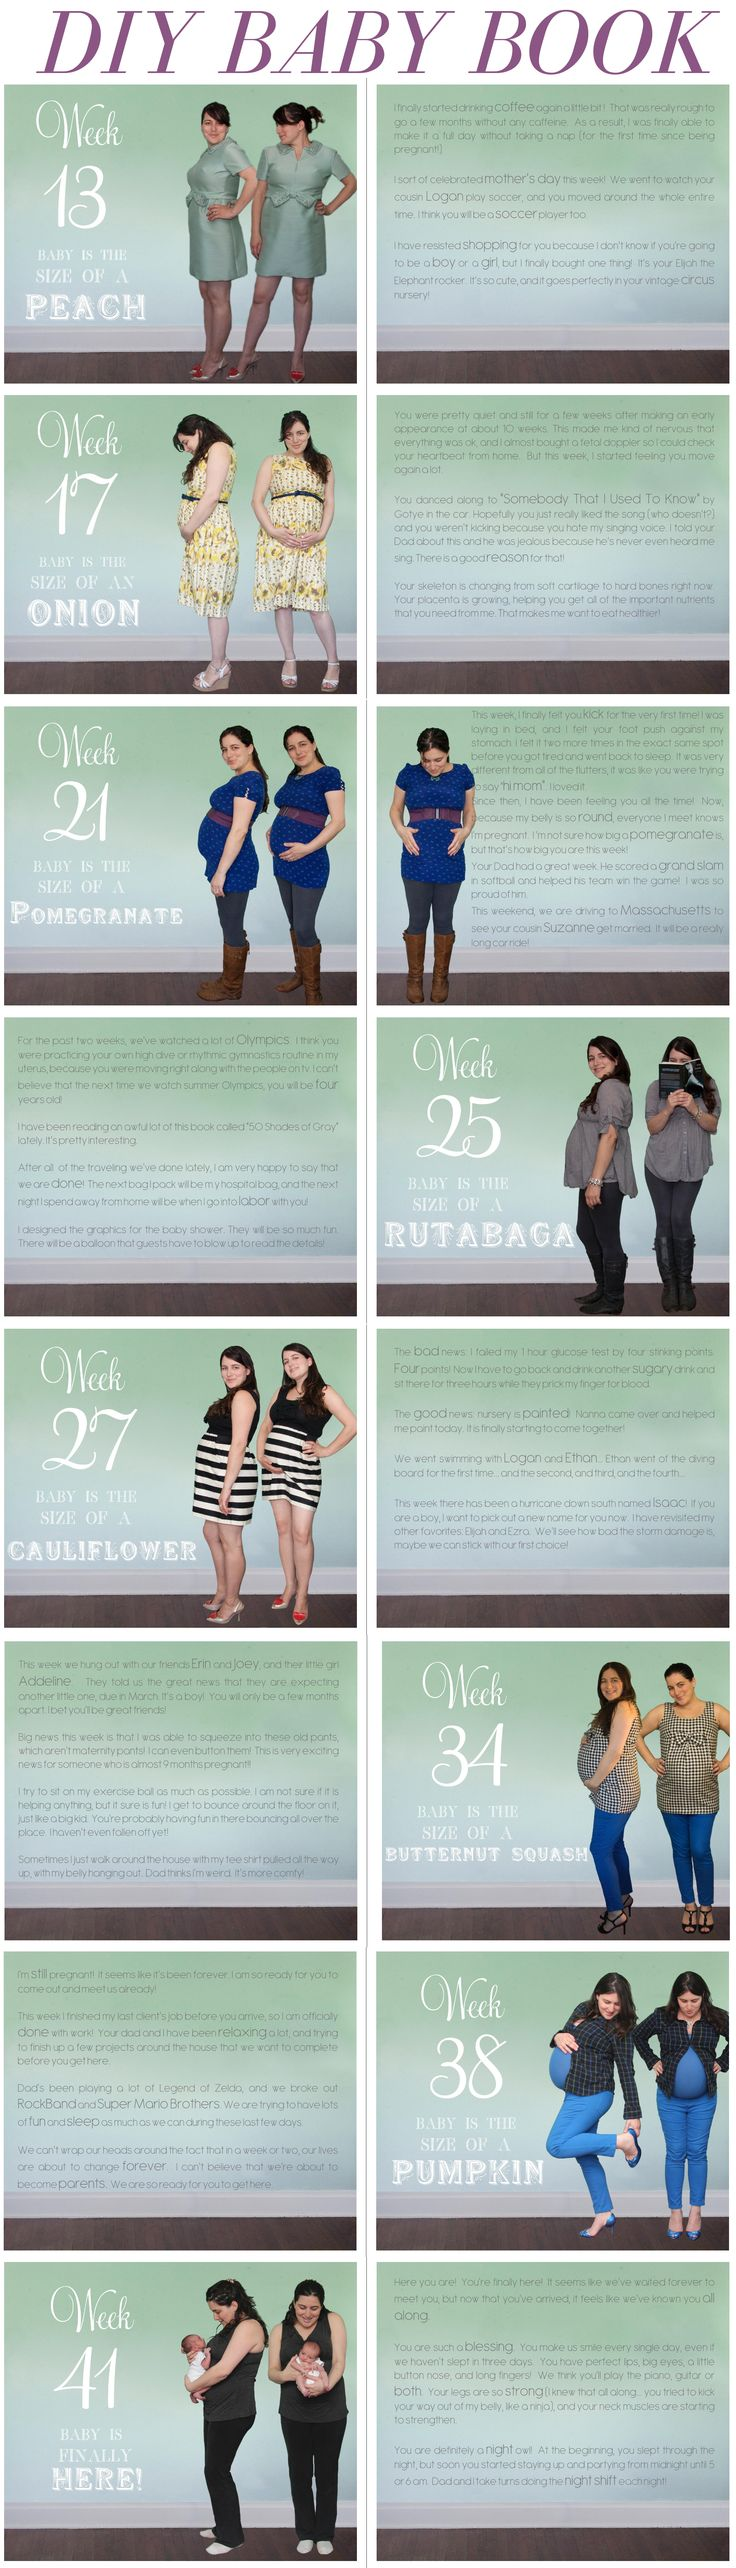 We staged weekly photos to show my progression as my belly grew.  I did some magic in photoshop, then created these pages in Blurb.  We ordered the finished book this week!